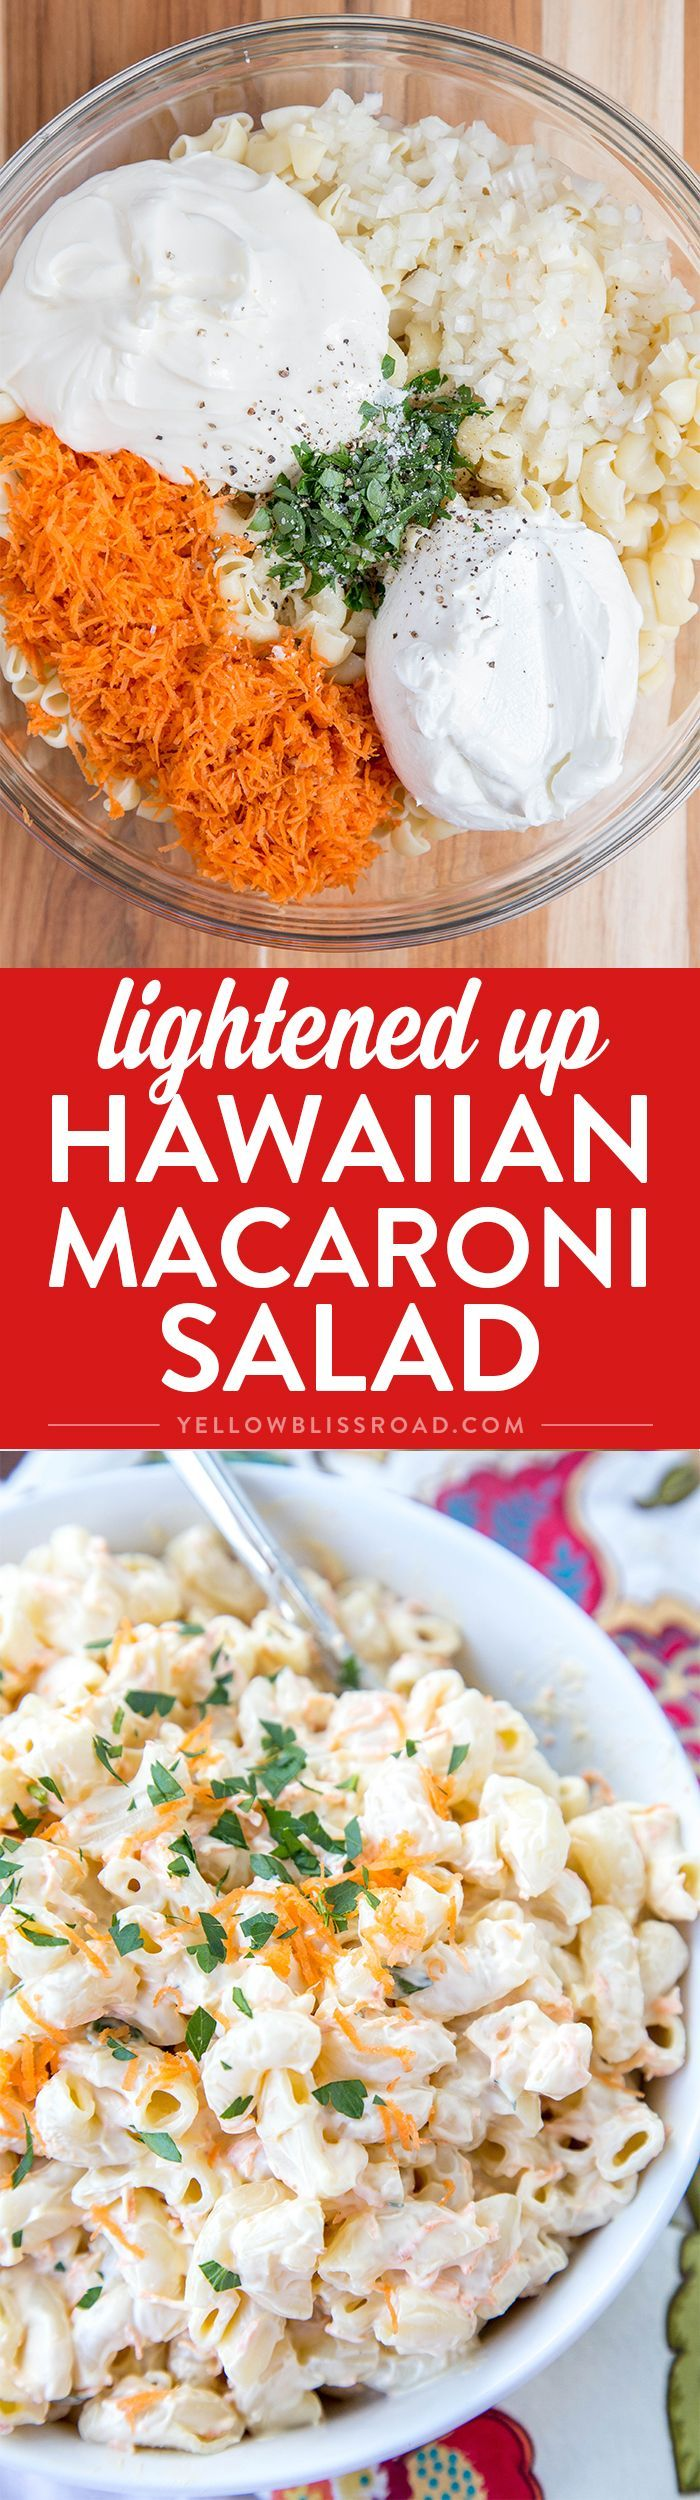 Lightened Up Hawaiian Macaroni Salad - Super creamy and much healthier than the classic version of this delicious side dish